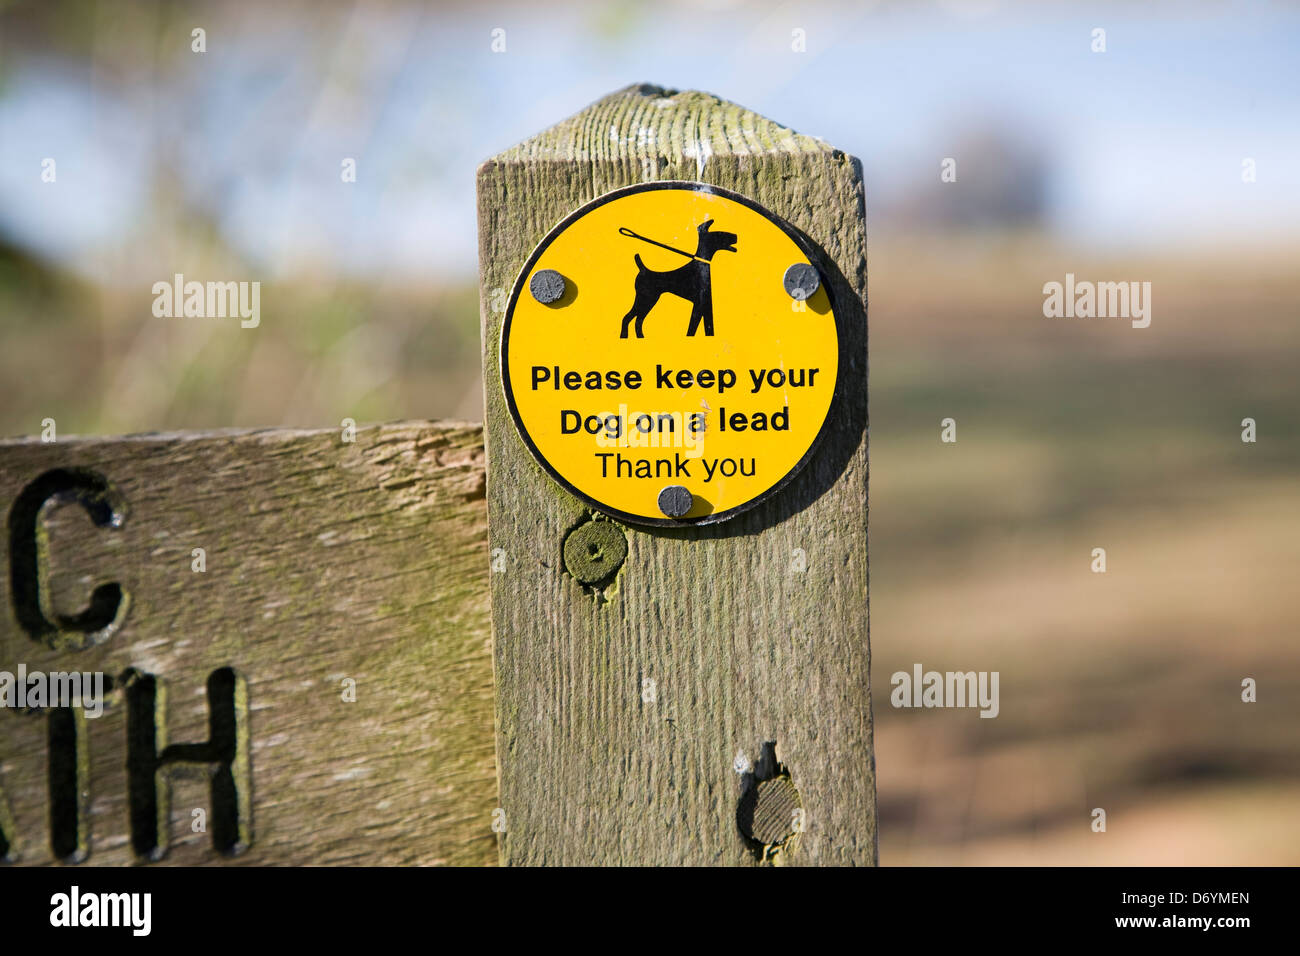 ´Please keep your dog on a lead Thank You´ sign on public footpath, UK - Stock Image